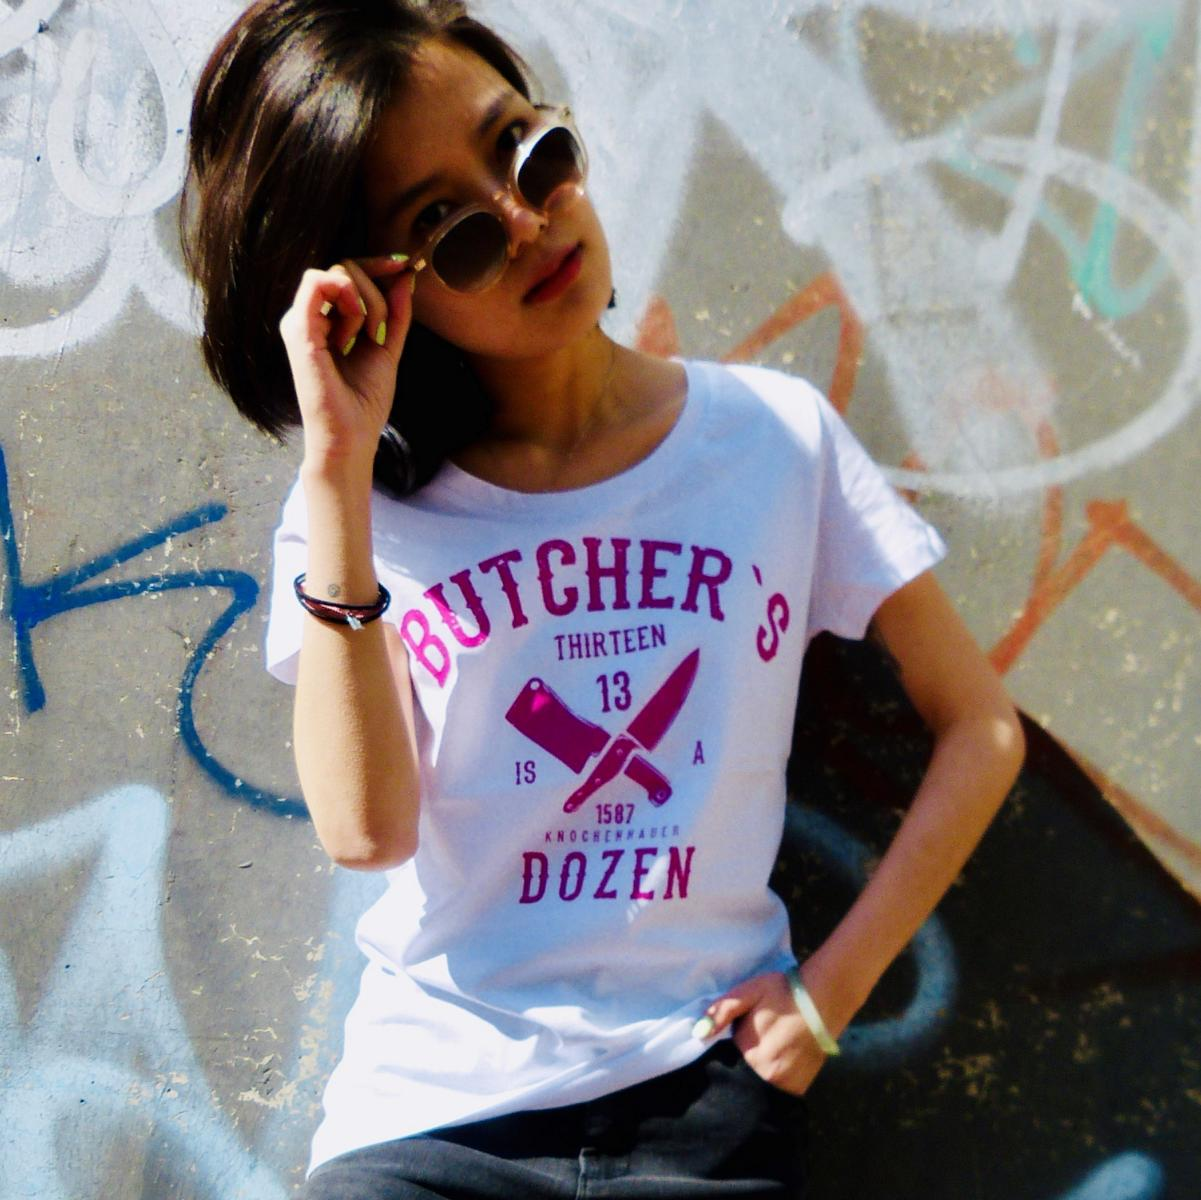 style hannover roderbruch design butchers - Roderbruch - Mode mit Hannover Colorit